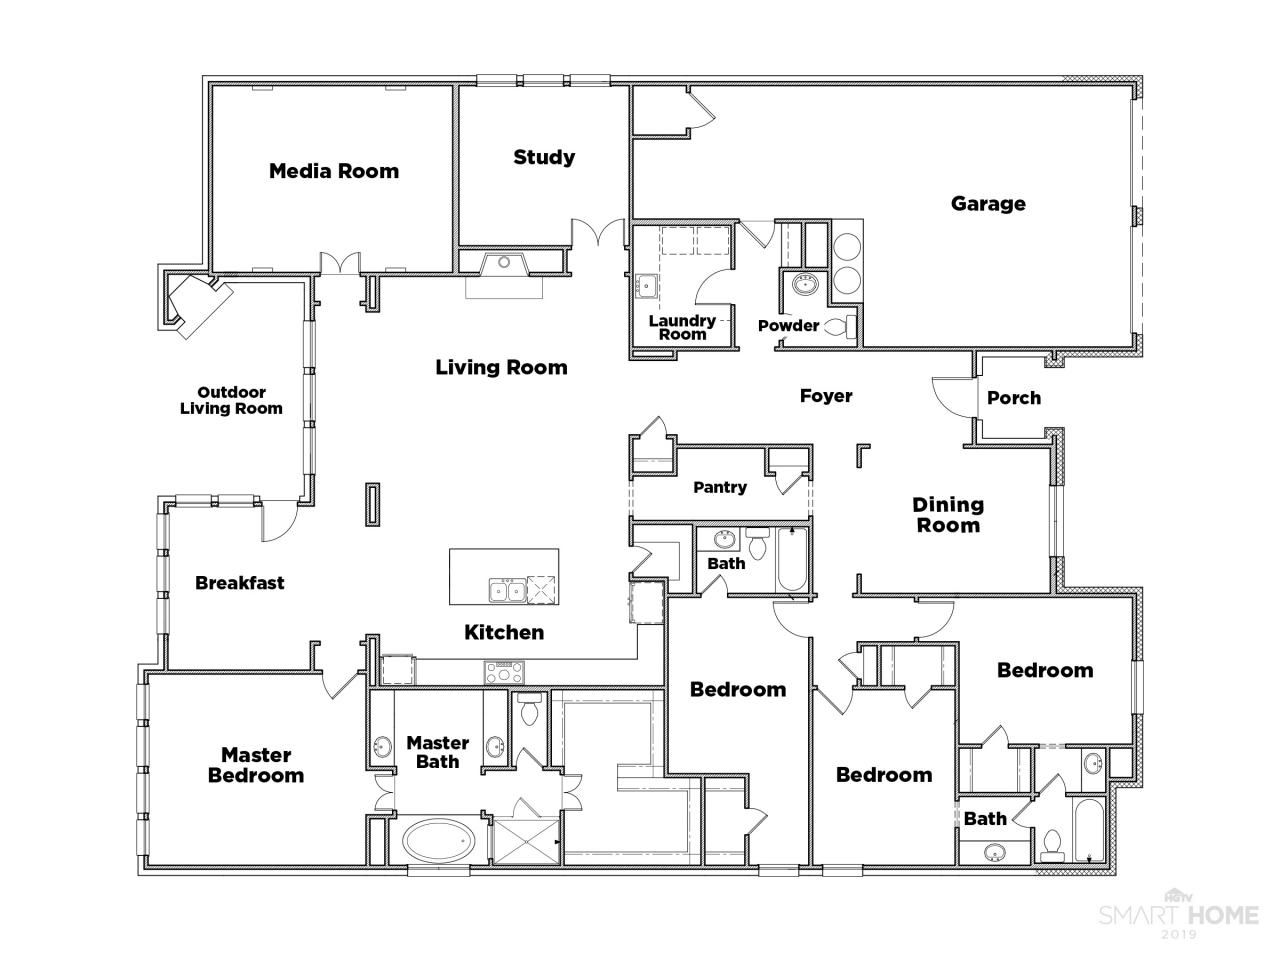 Discover The Floor Plan For Hgtv Smart Home 2019 Floor Plans House Floor Plans Floor Plan App